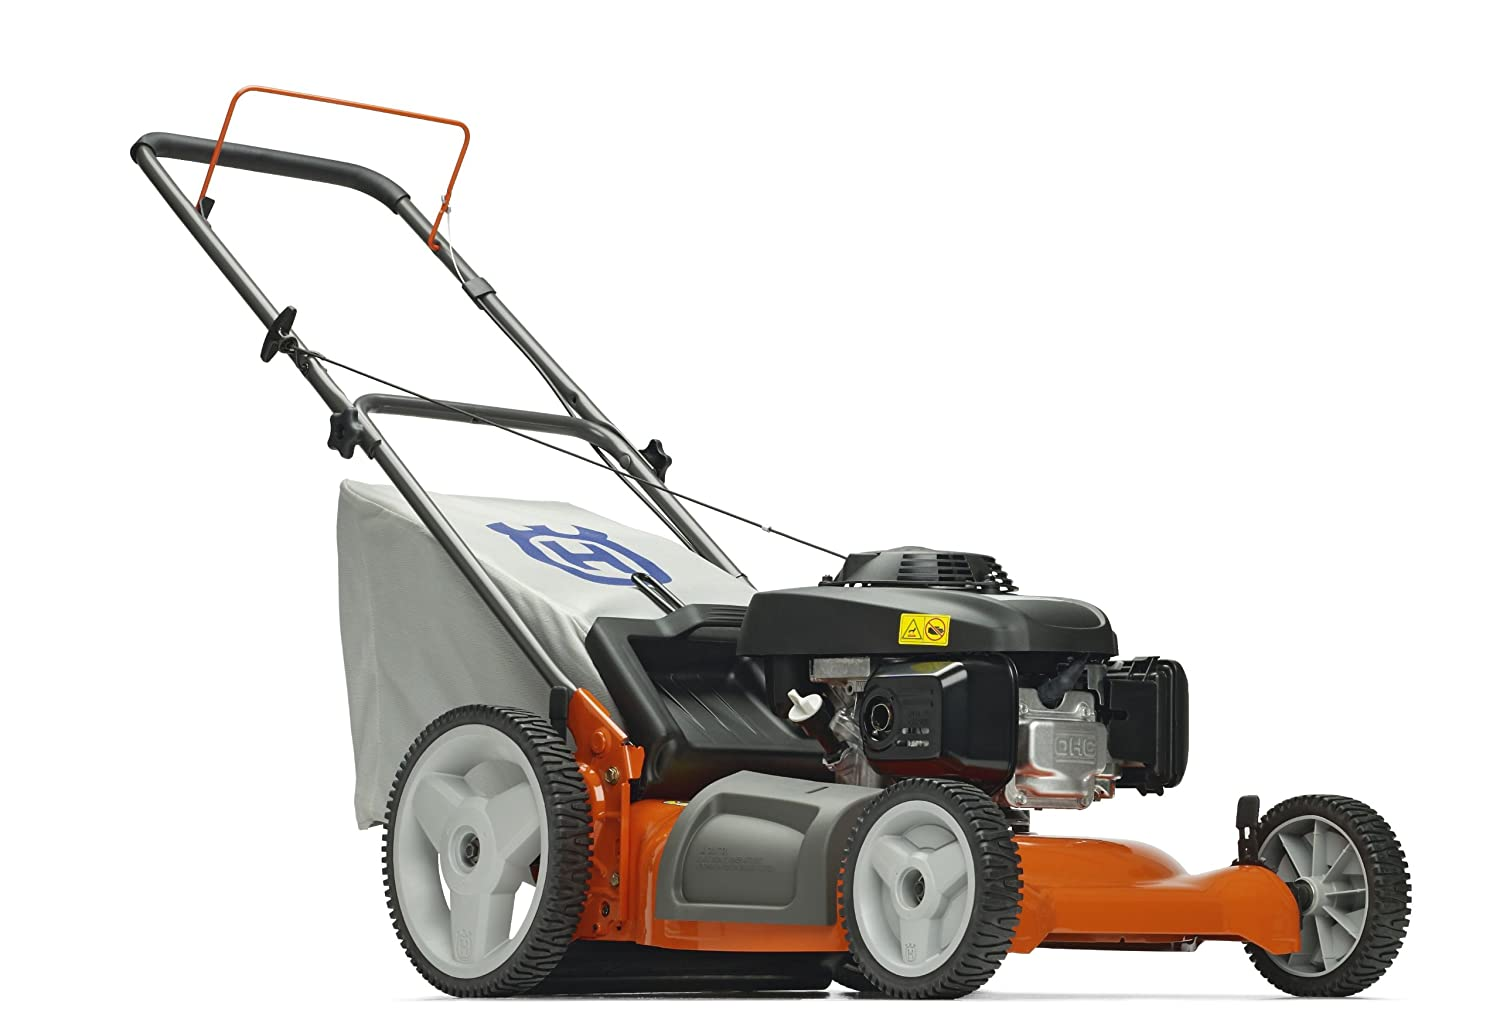 Husqvarna 7021P 21-Inch Push Lawn Mower Review